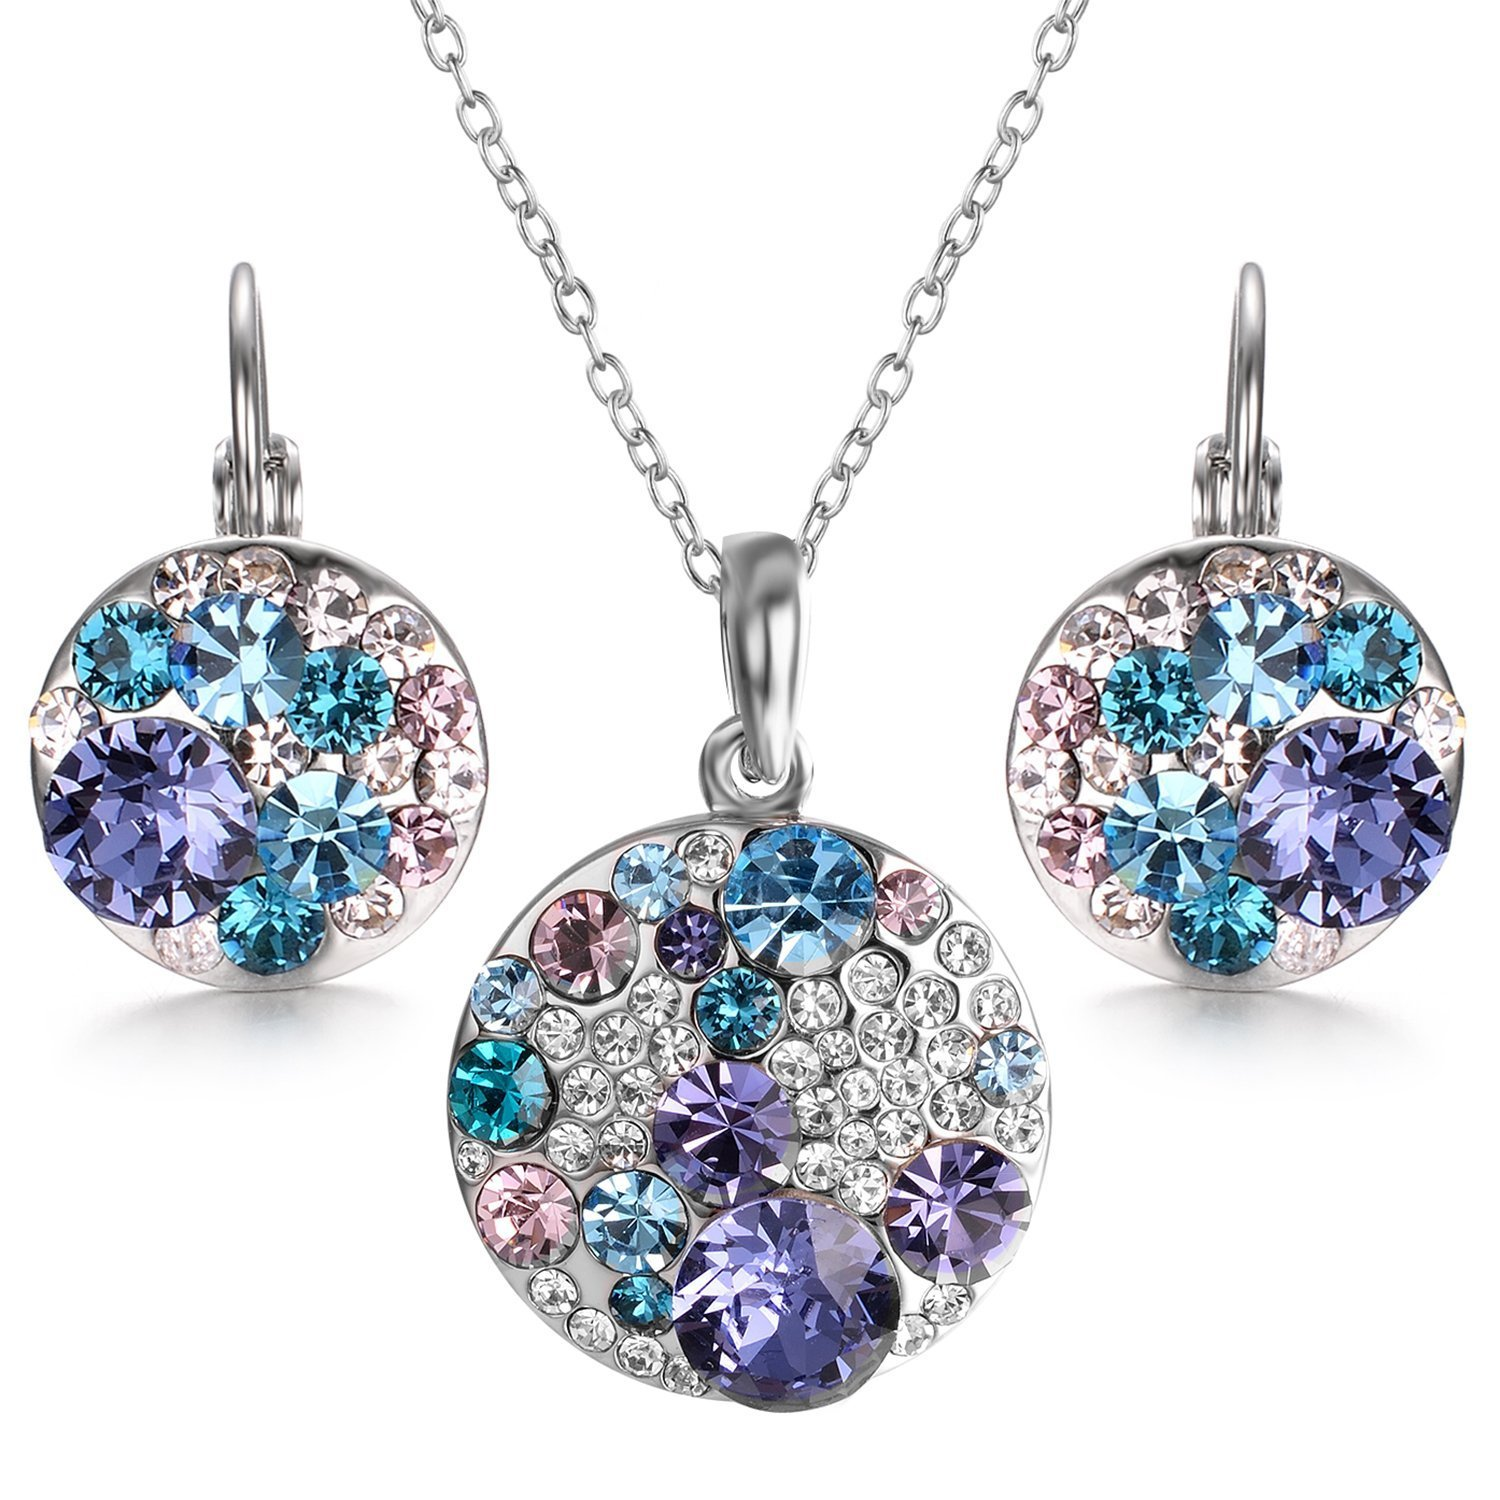 Yoursfs Ocean Bubble Crystals Multi-Stone Round Disc Pendant Necklace Leverback Earrings Women